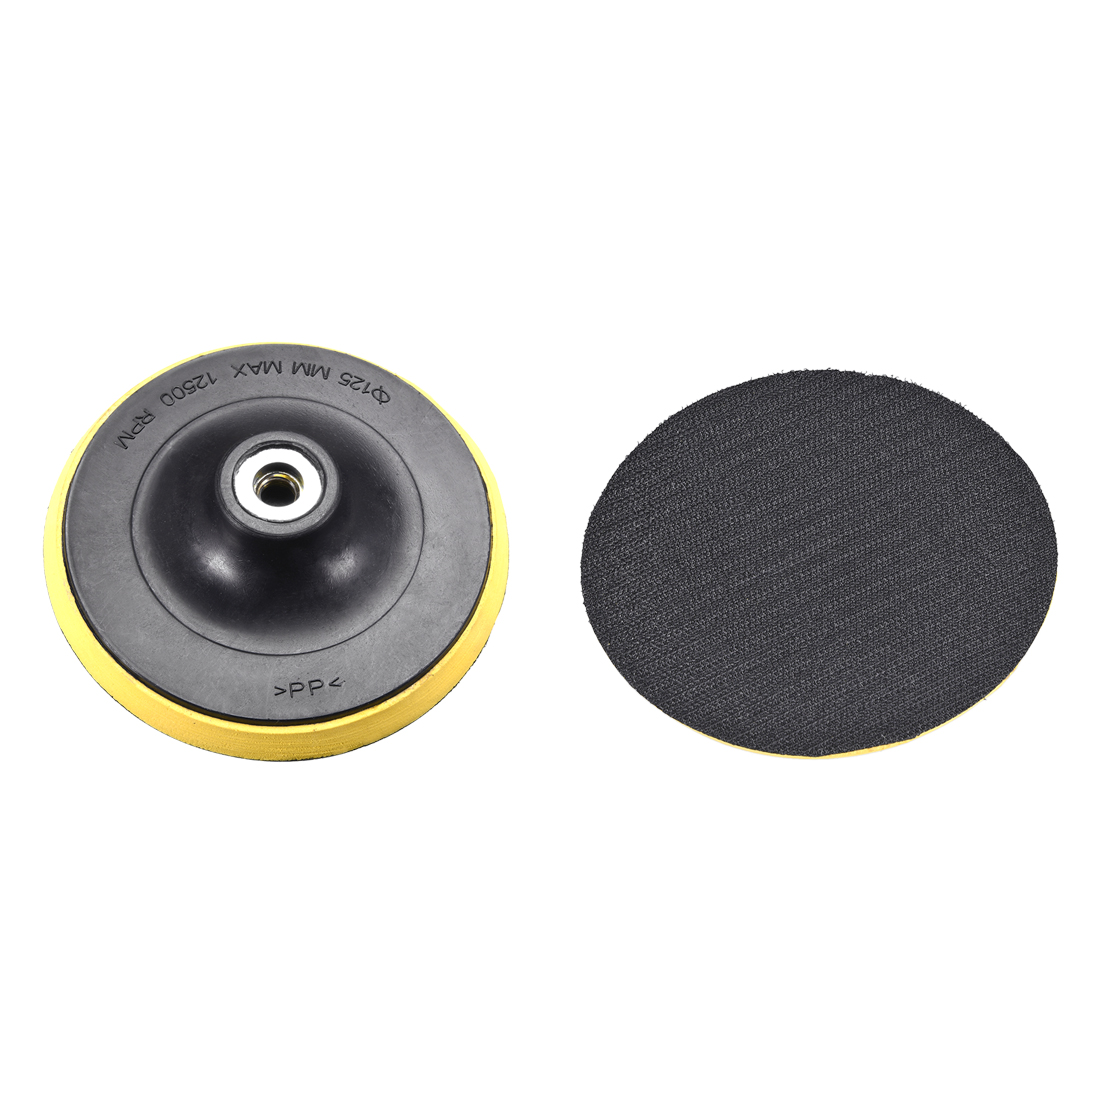 "Polishing Disc Suction Cup Self-Adhesive Sticky Disk Sandpaper Sucker 5"" 2pcs"